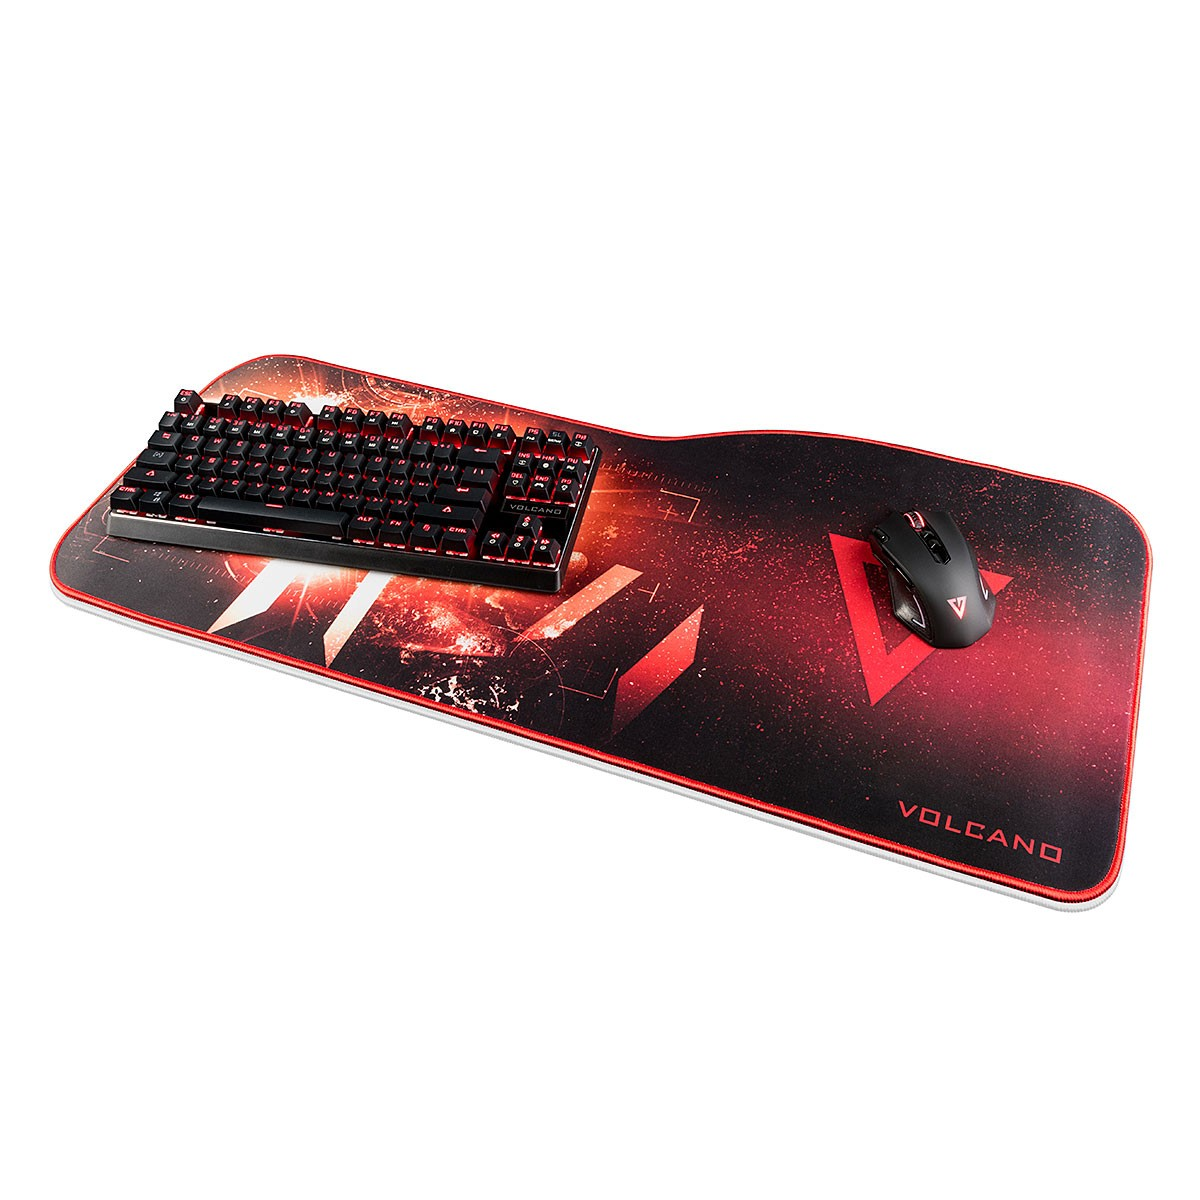 MODECOM VOLCANO 800x345x3mm mousepad for gamers